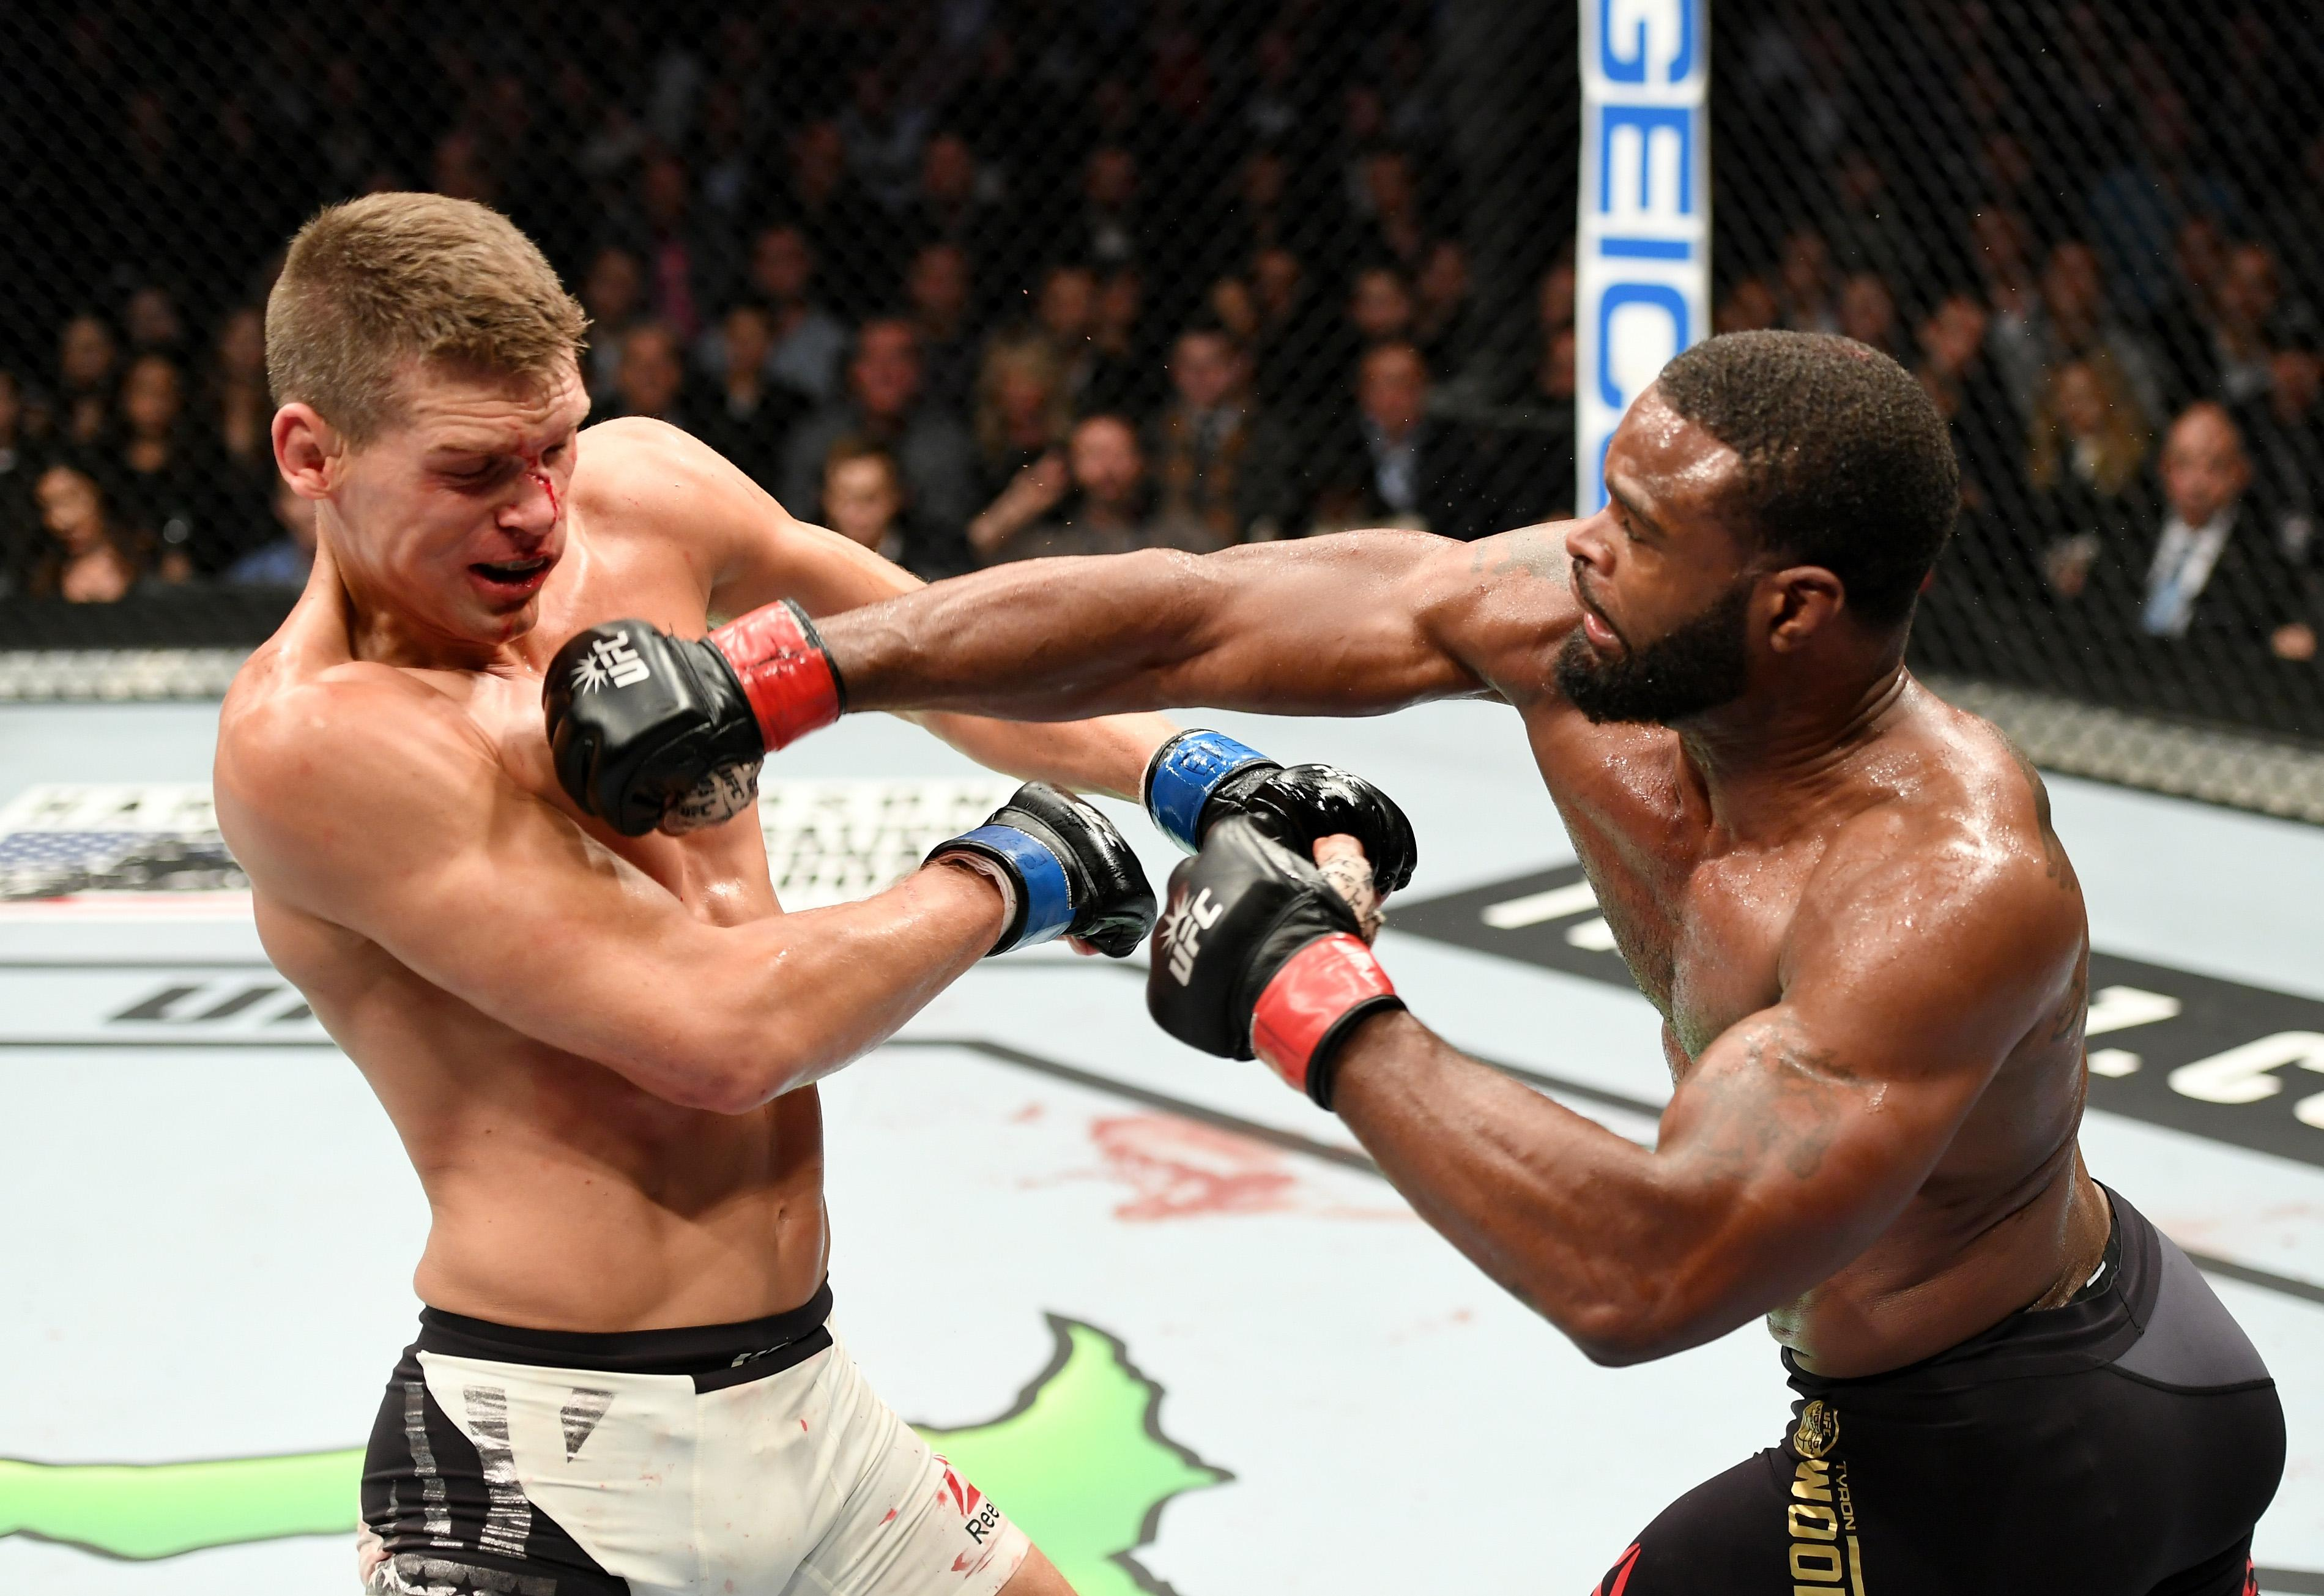 Thompson was unsuccessful in two world title bouts against welterweight champion Tyron Woodley